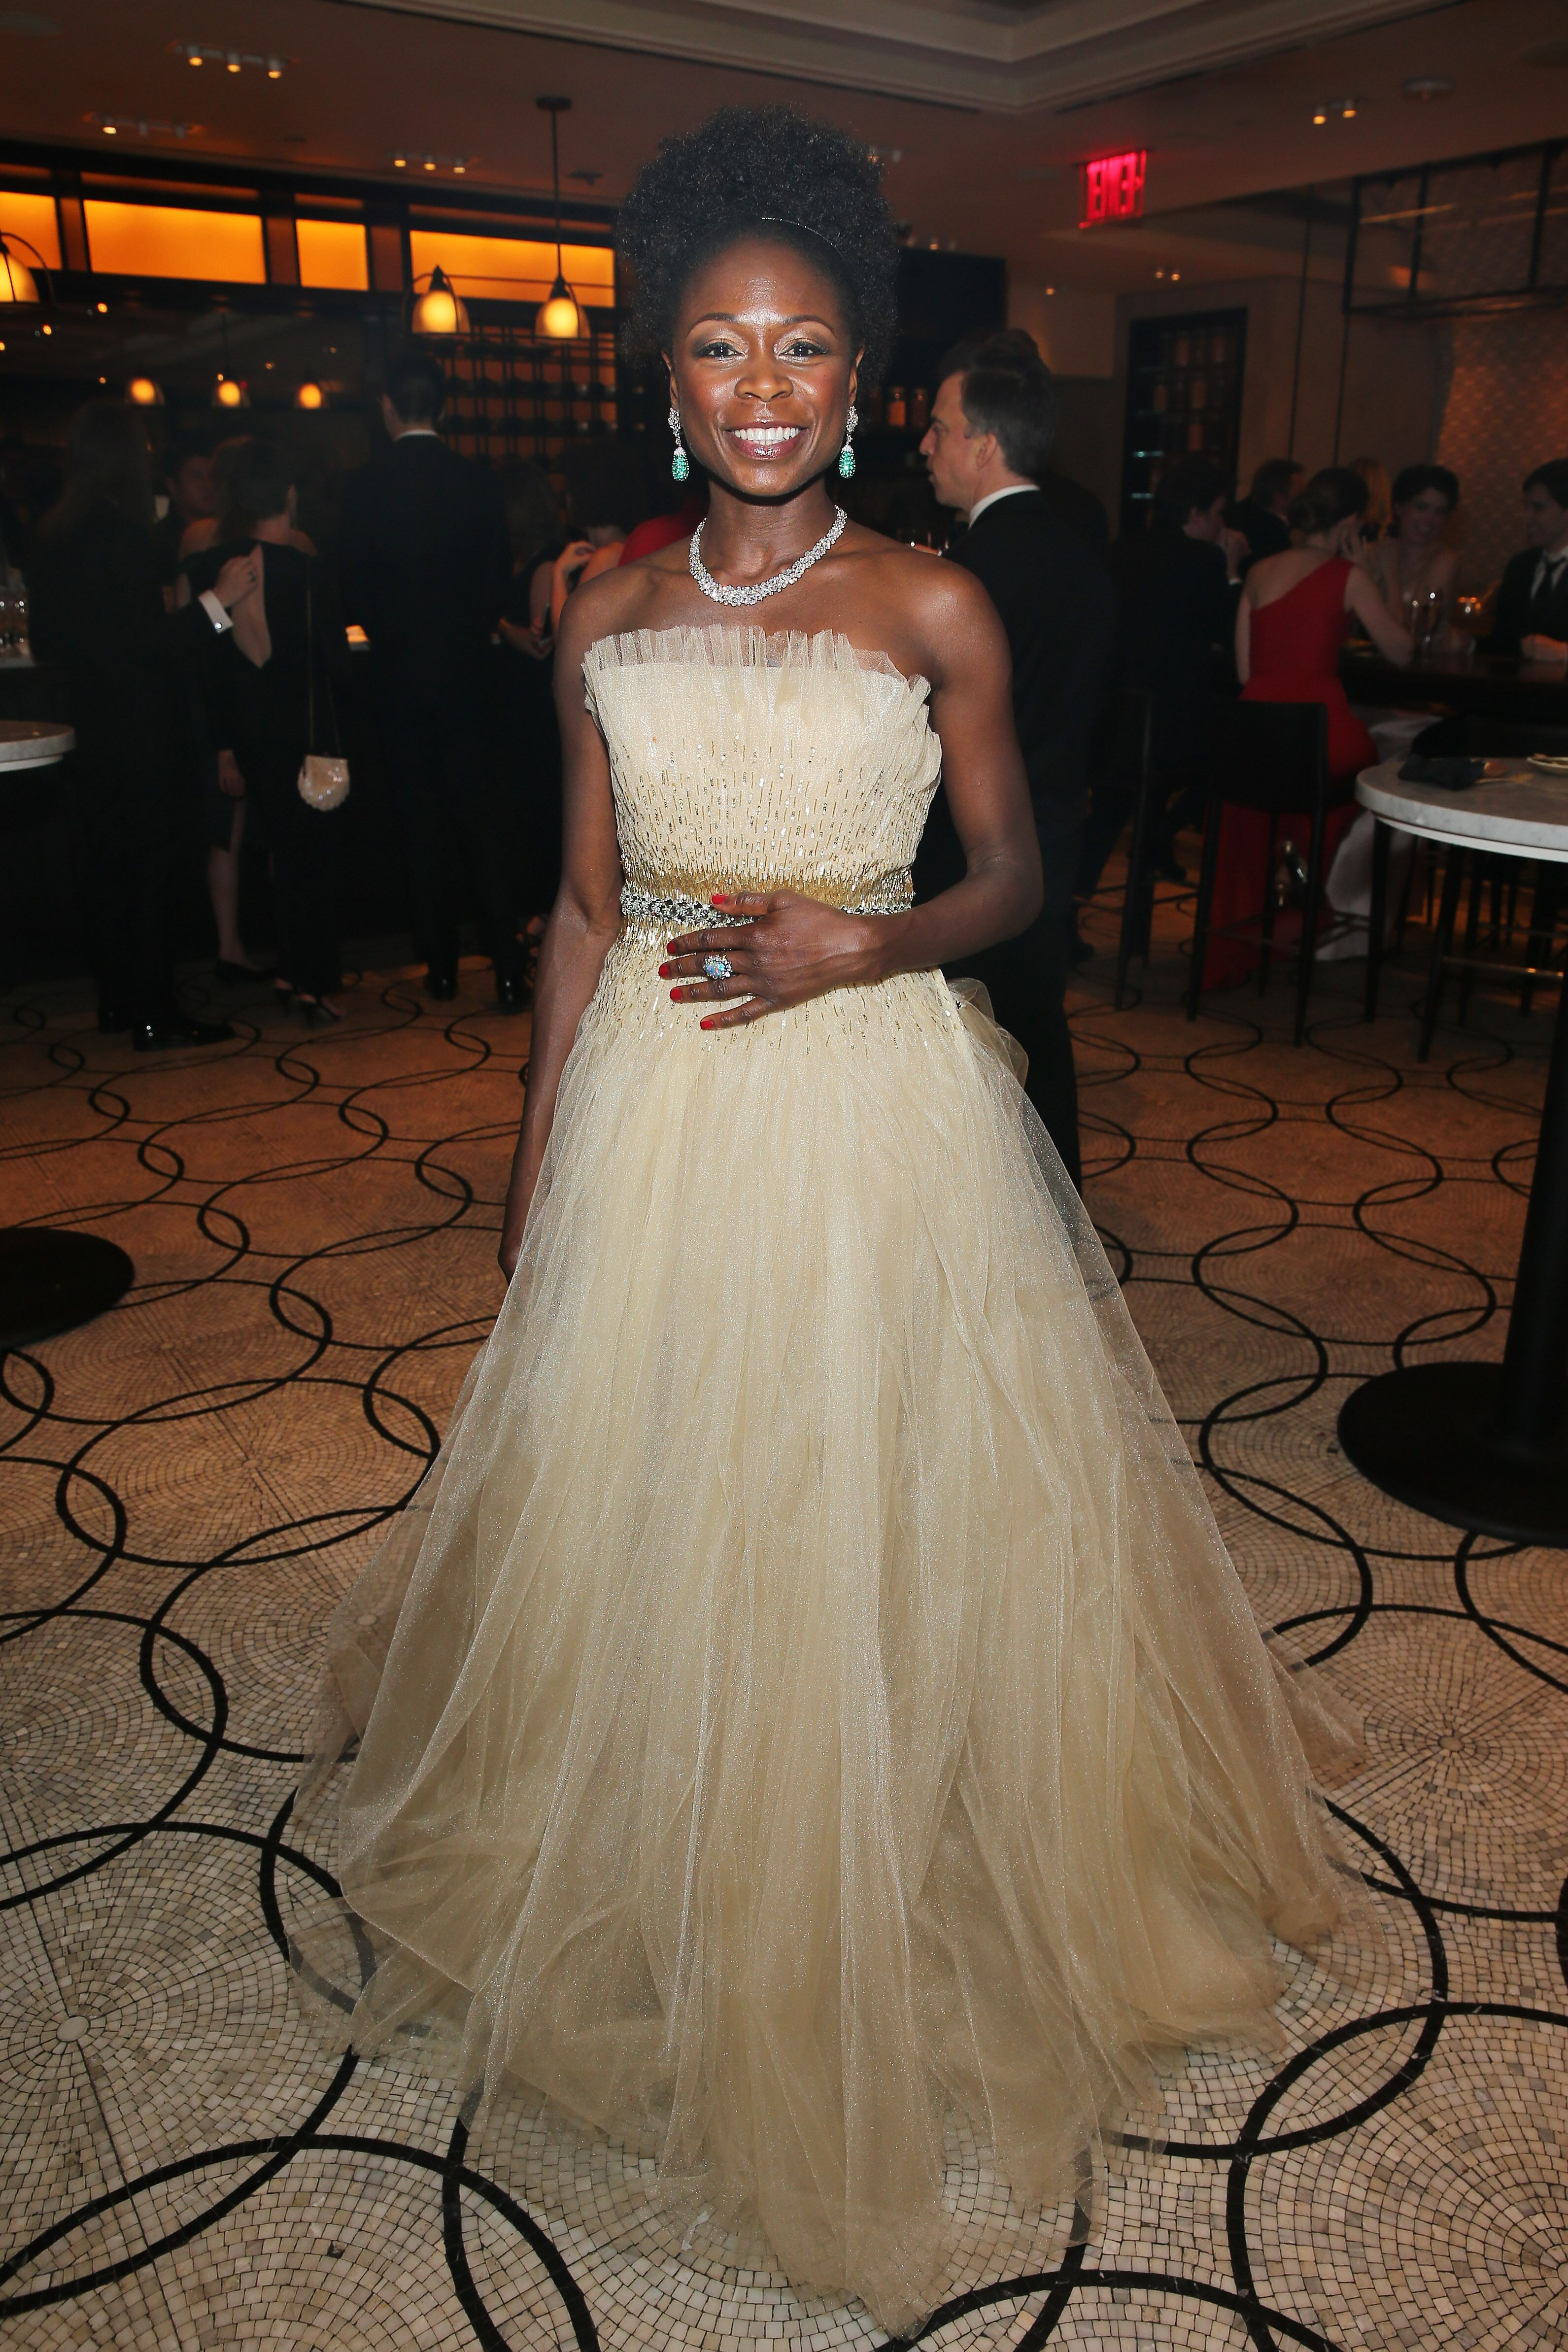 Akosua Busia attends the after party for the 2016 Tony Awards Gala presented by Porsche at the Plaza Hotel on June 12, 2016 in New York City | Photo: Getty Images